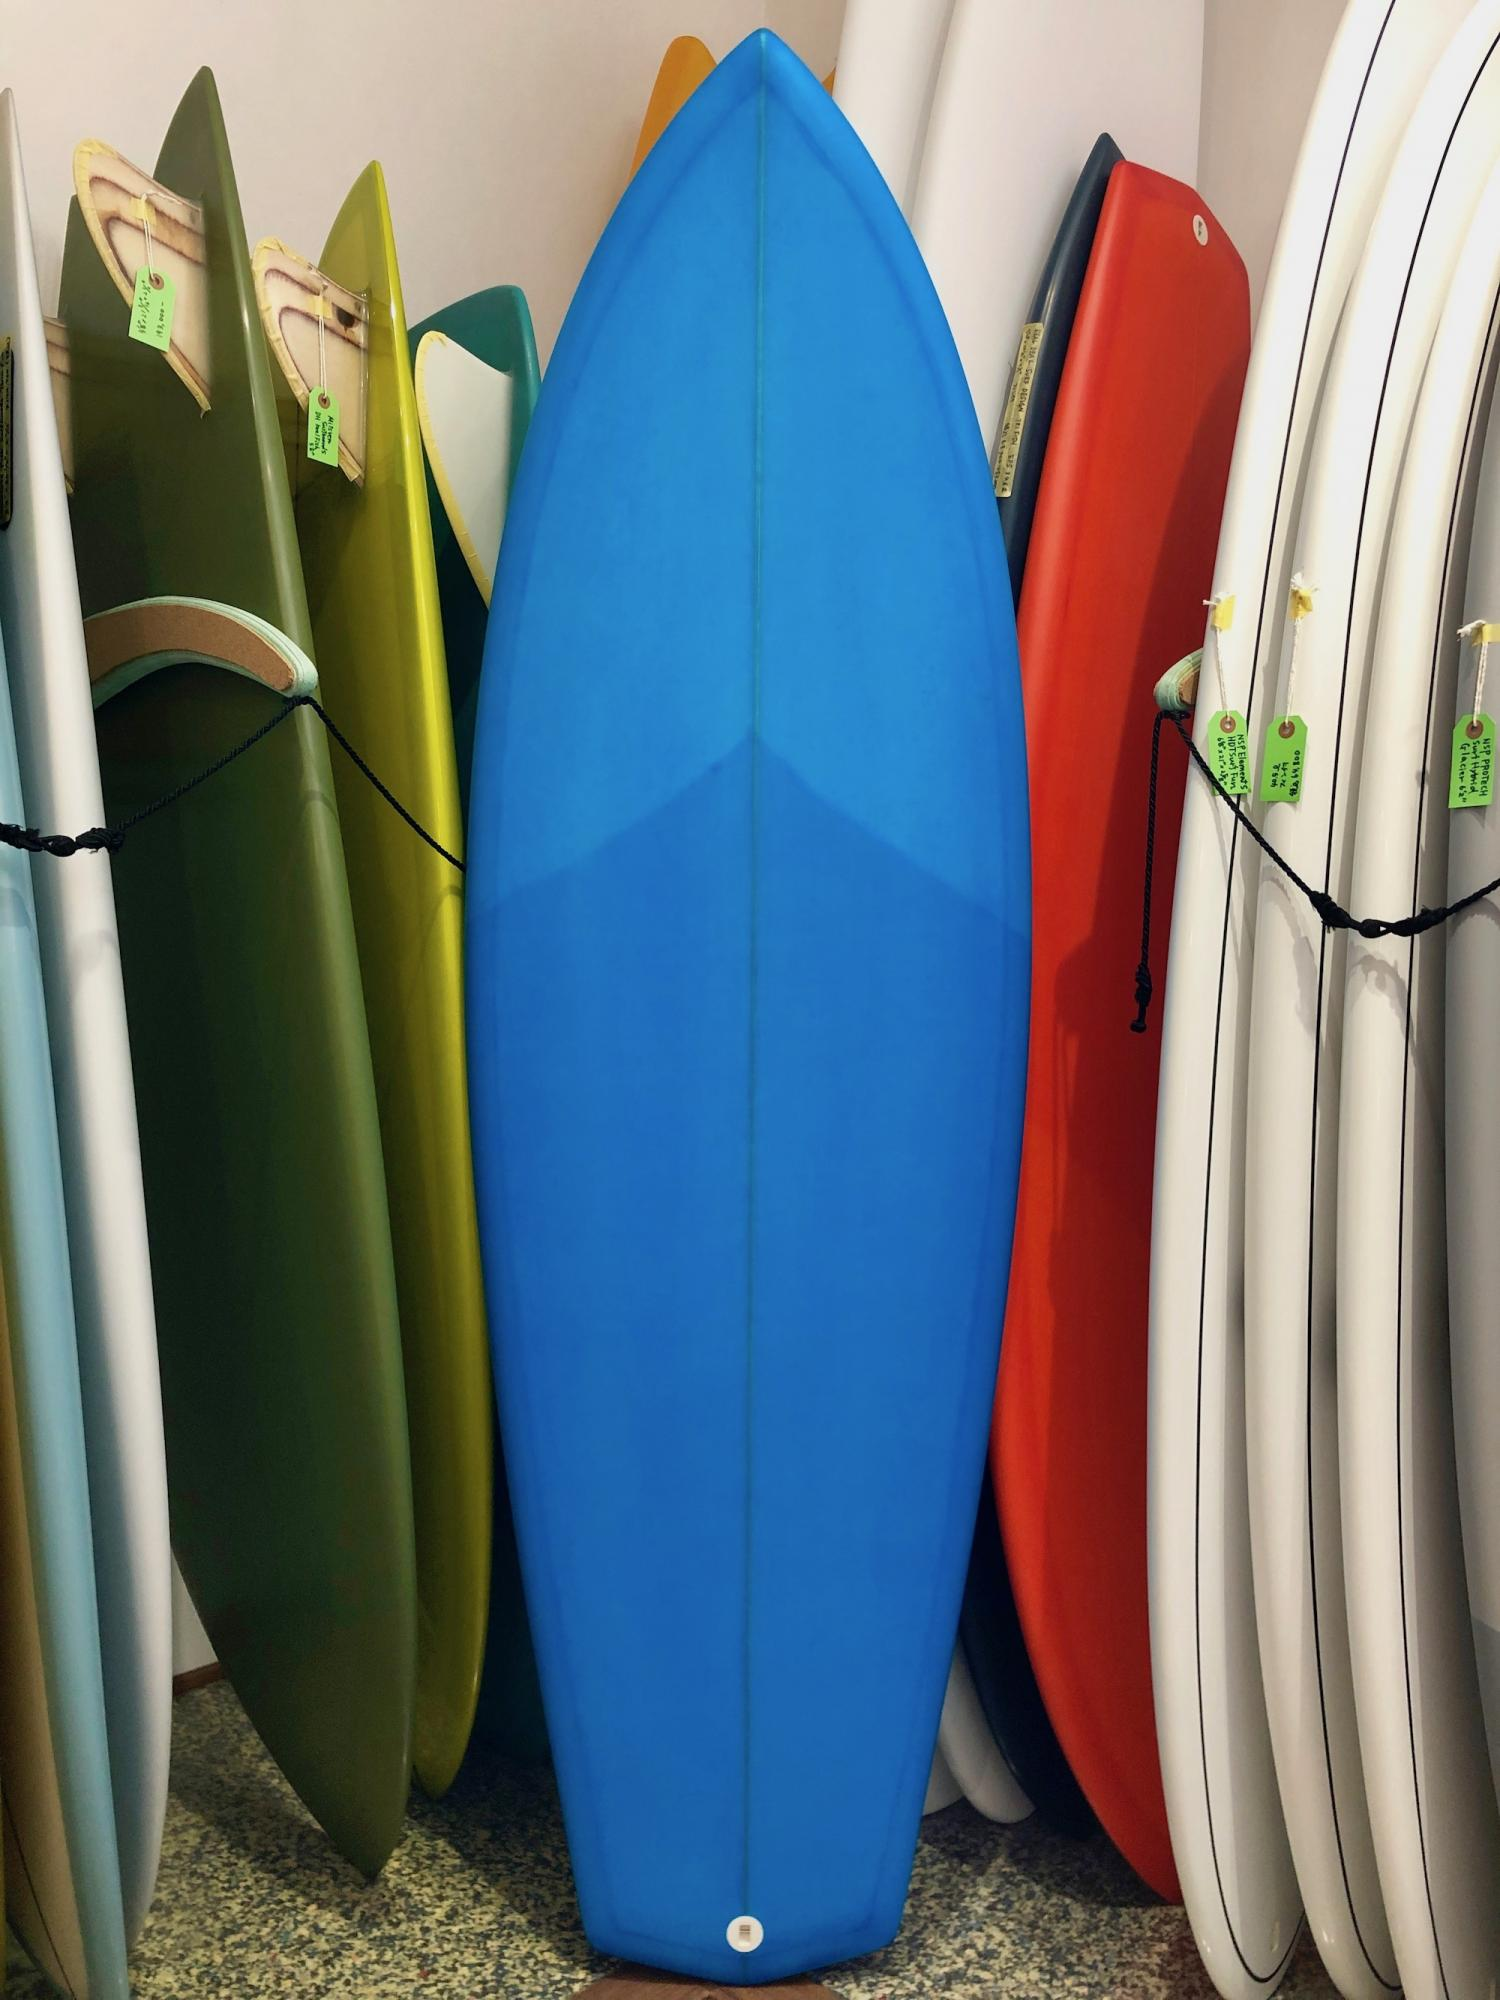 RMD SURFBOARDS 5.8 Fire ball